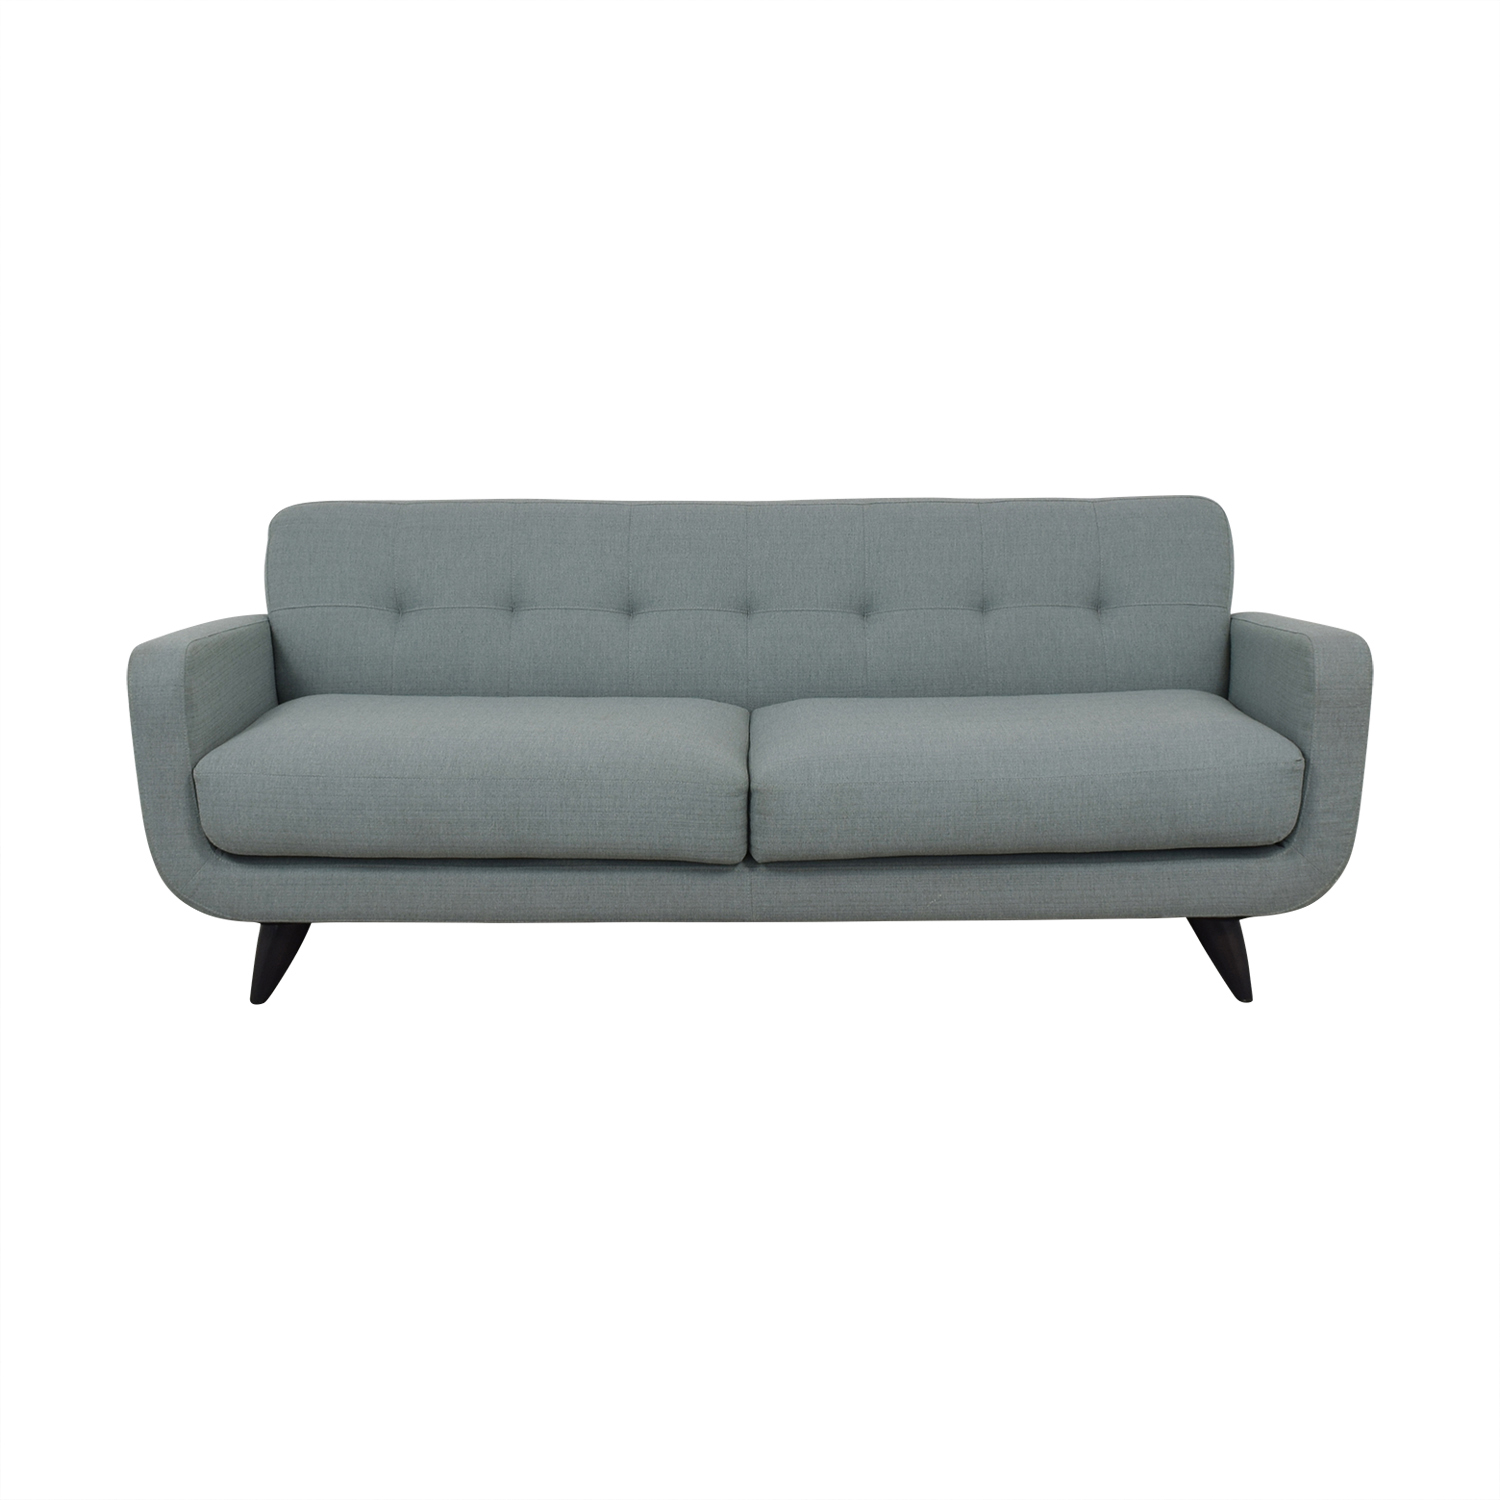 Room & Board Anson Blue Grey Tufted Two-Cushion Couch / Sofas